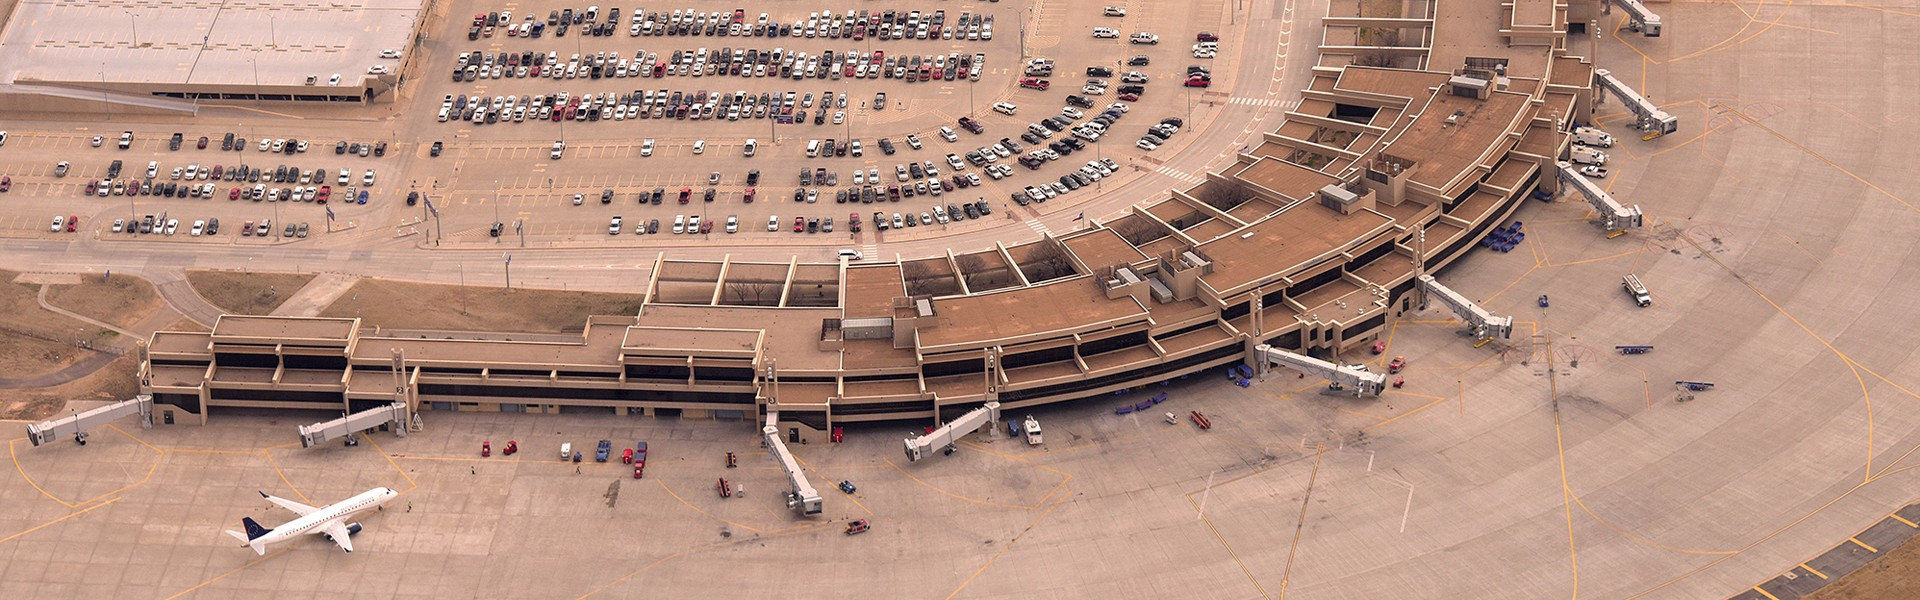 Lubbock International Airport – Lubbock, TX